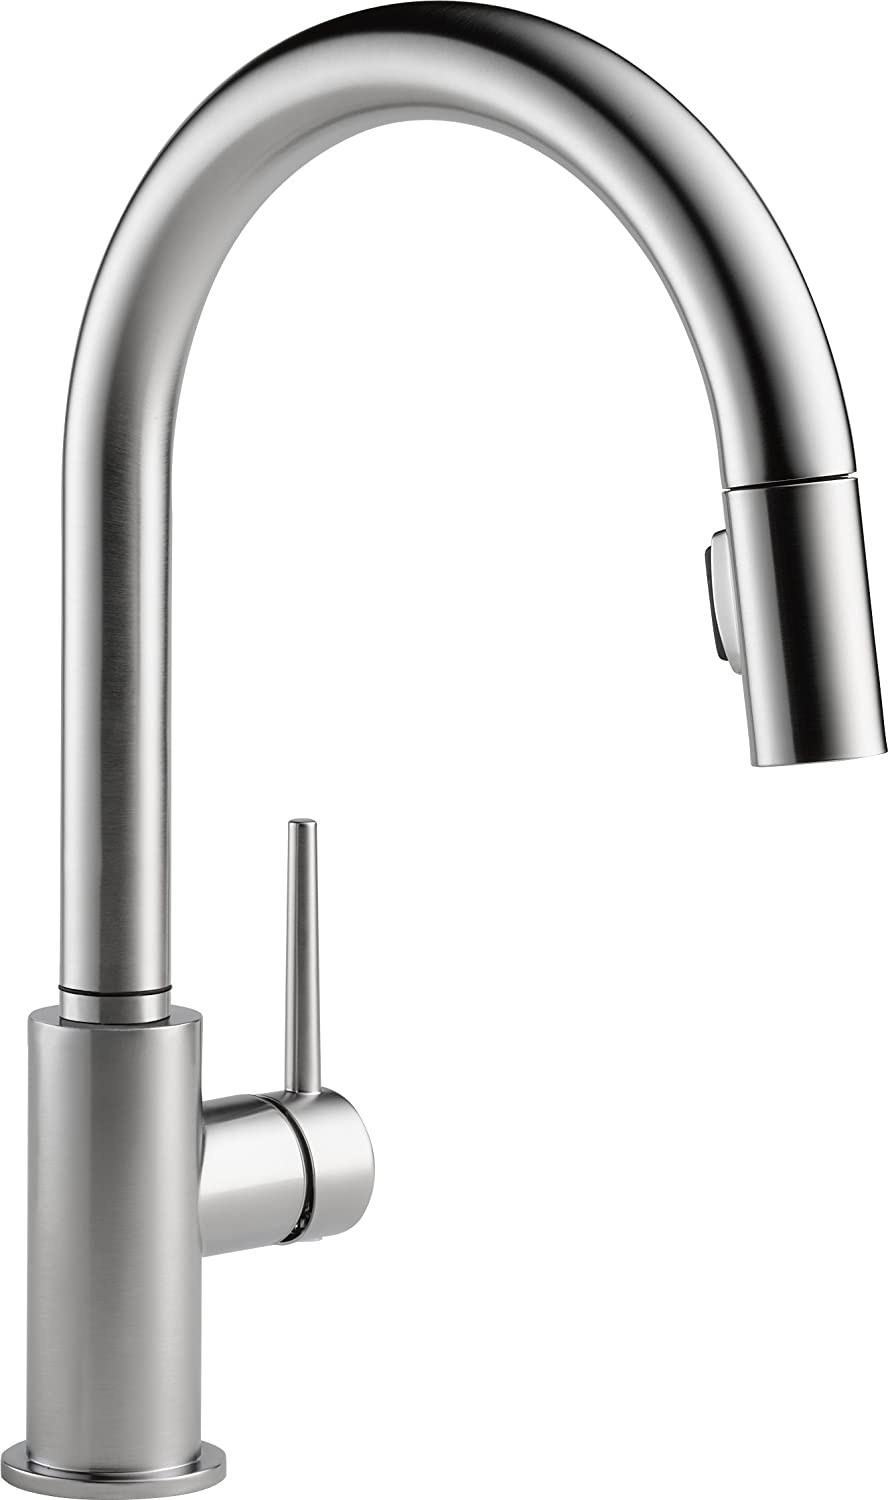 Leland Delta Kitchen Faucet Delta Kitchen Faucets The Complete Guide Top Reviews